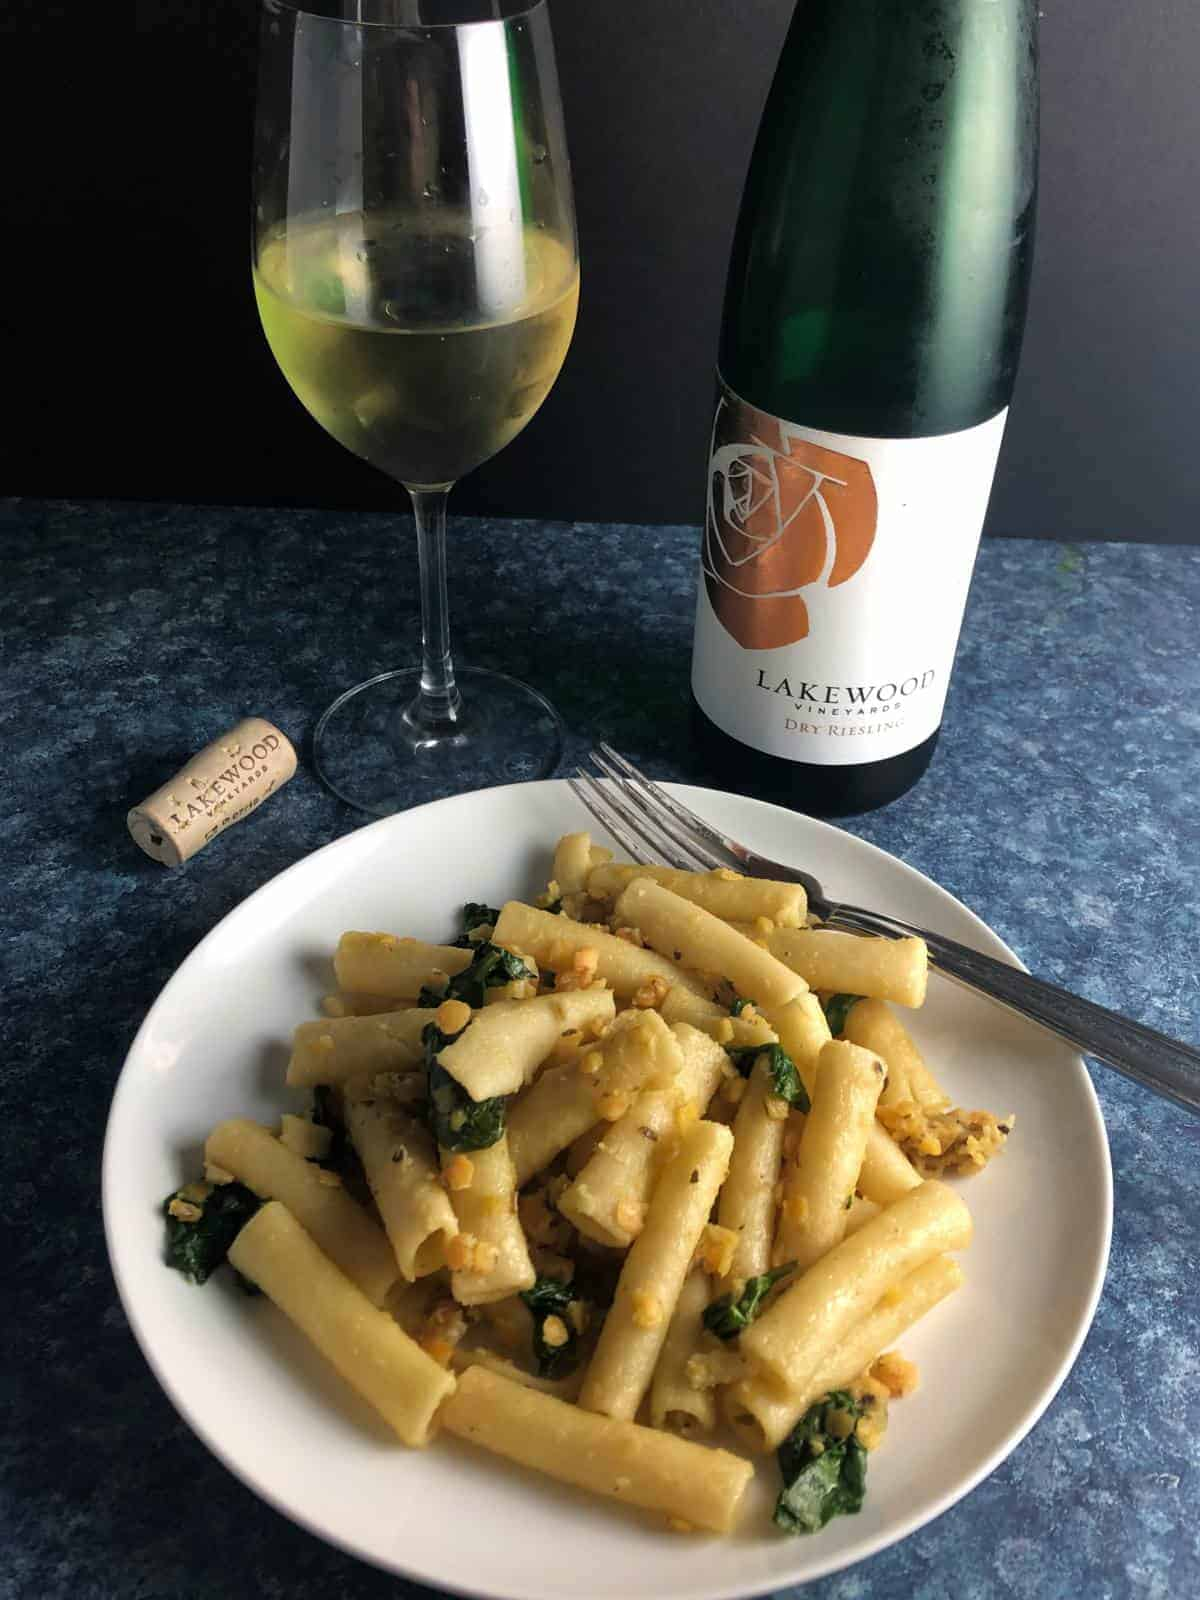 Lakewood Riesling with pasta